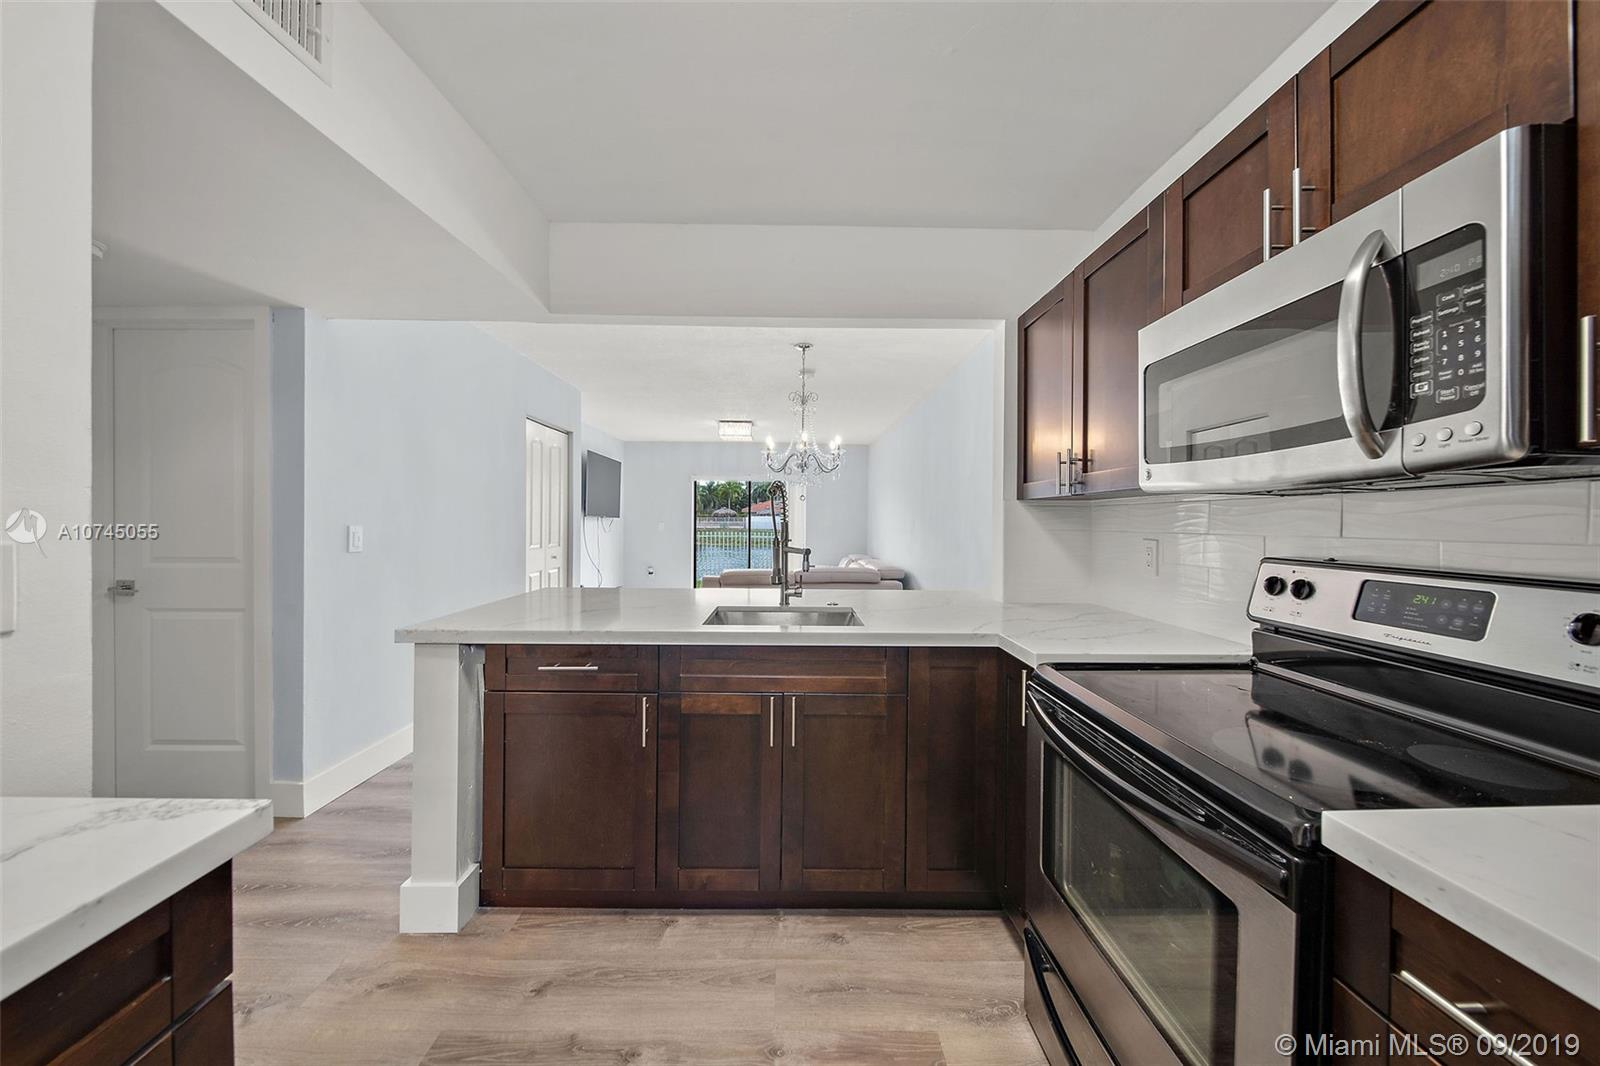 7668 SW 152nd Ave, Kendall West, Florida